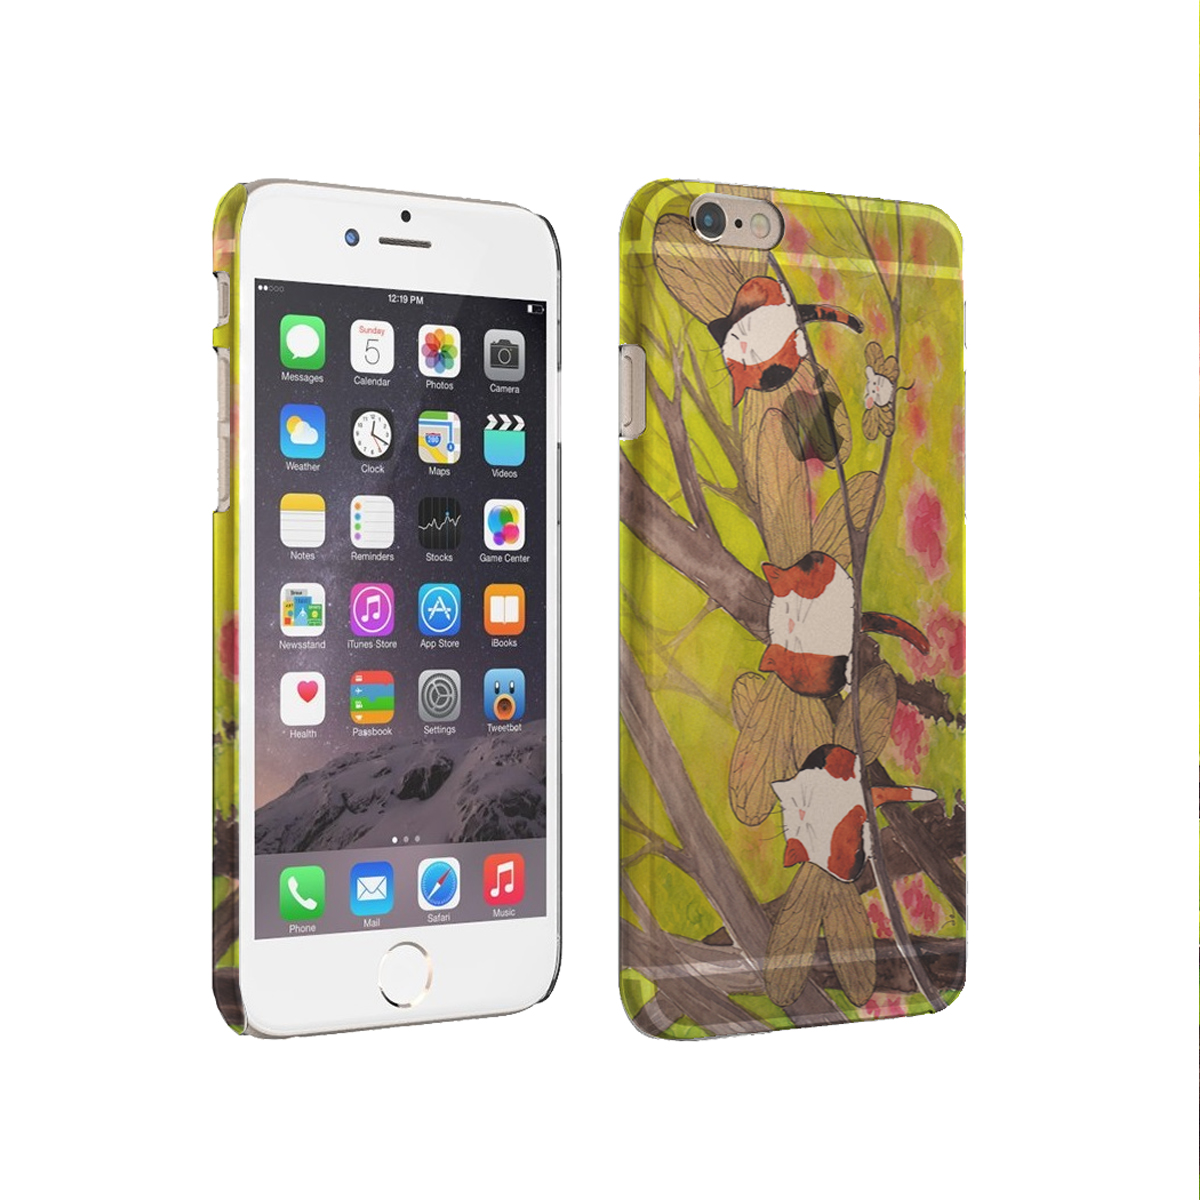 KuzmarK iPhone 6 Plus Rubber Cover Case - Calico Kitty and White Mouse Fairies with Redbud Trees Cat Art by Denise Every